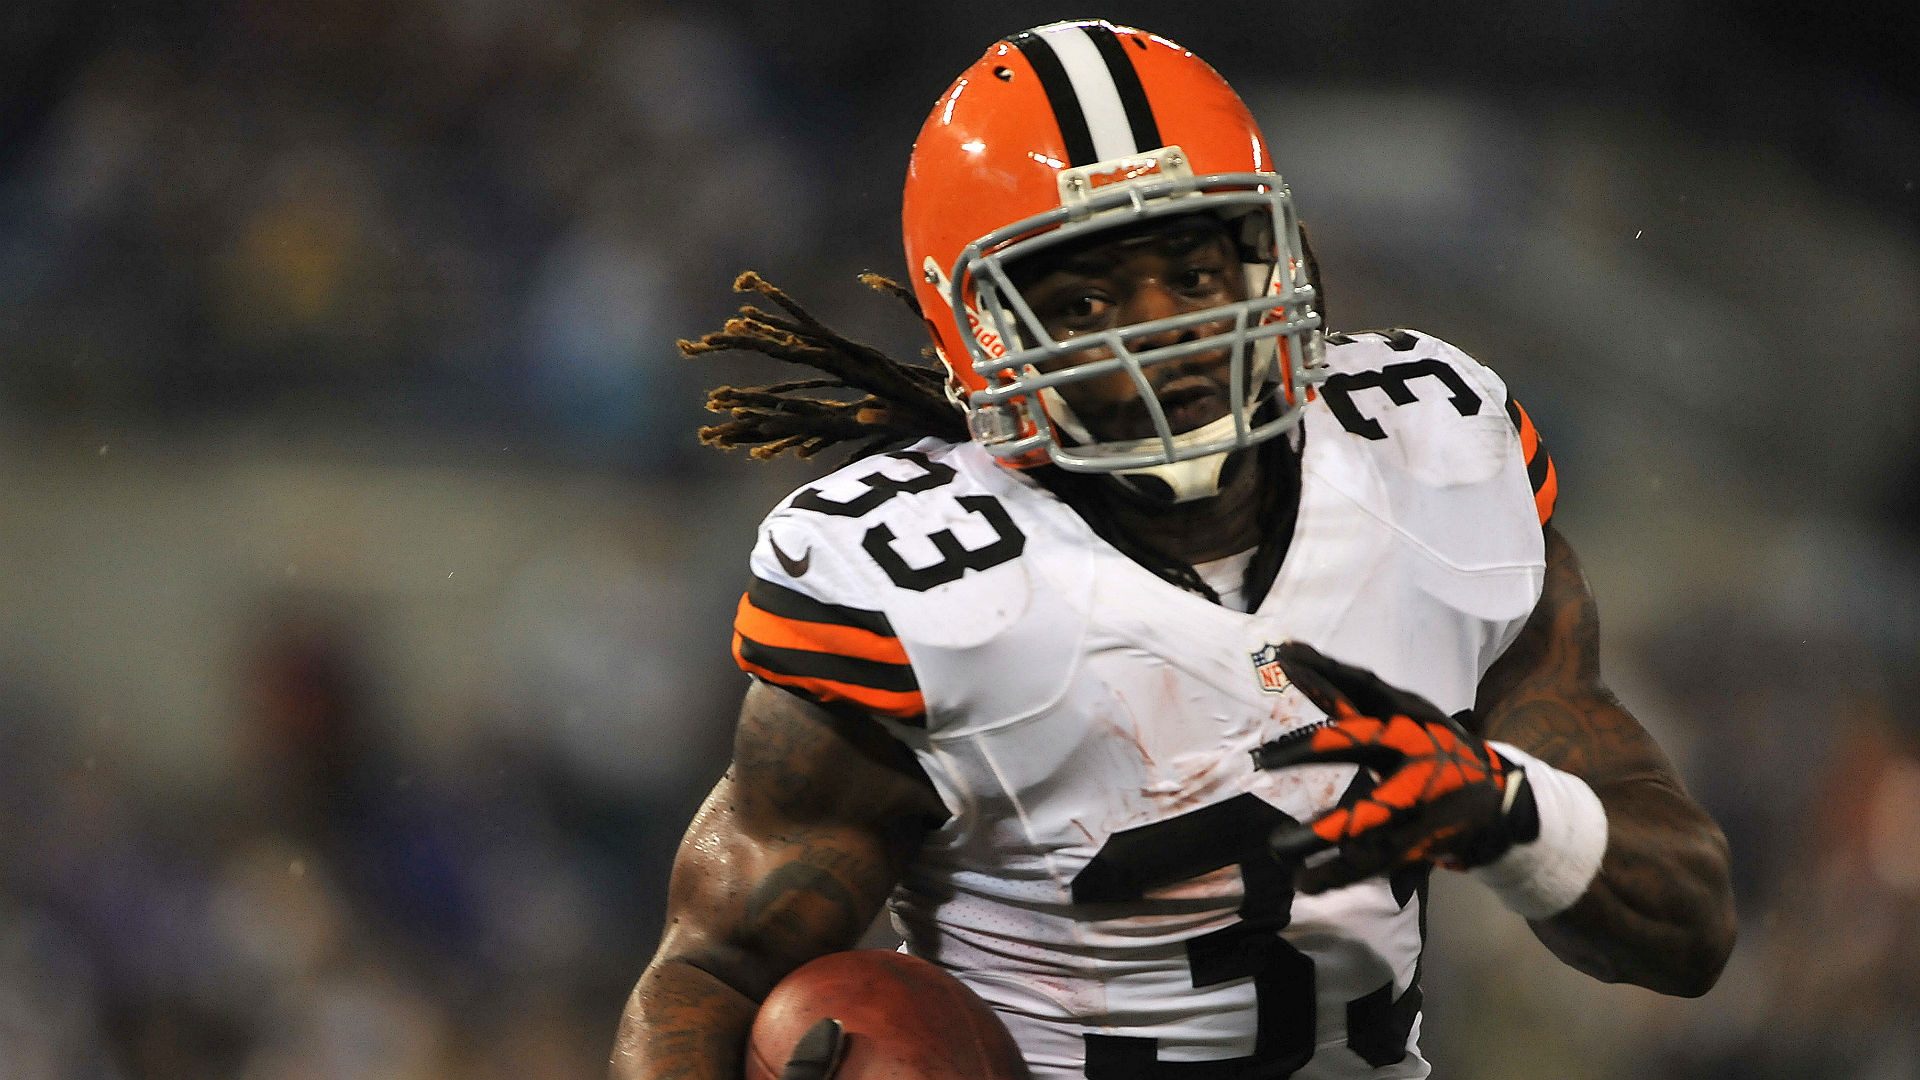 Saskatchewan Roughriders Sign Former NFL RB Trent Richardson